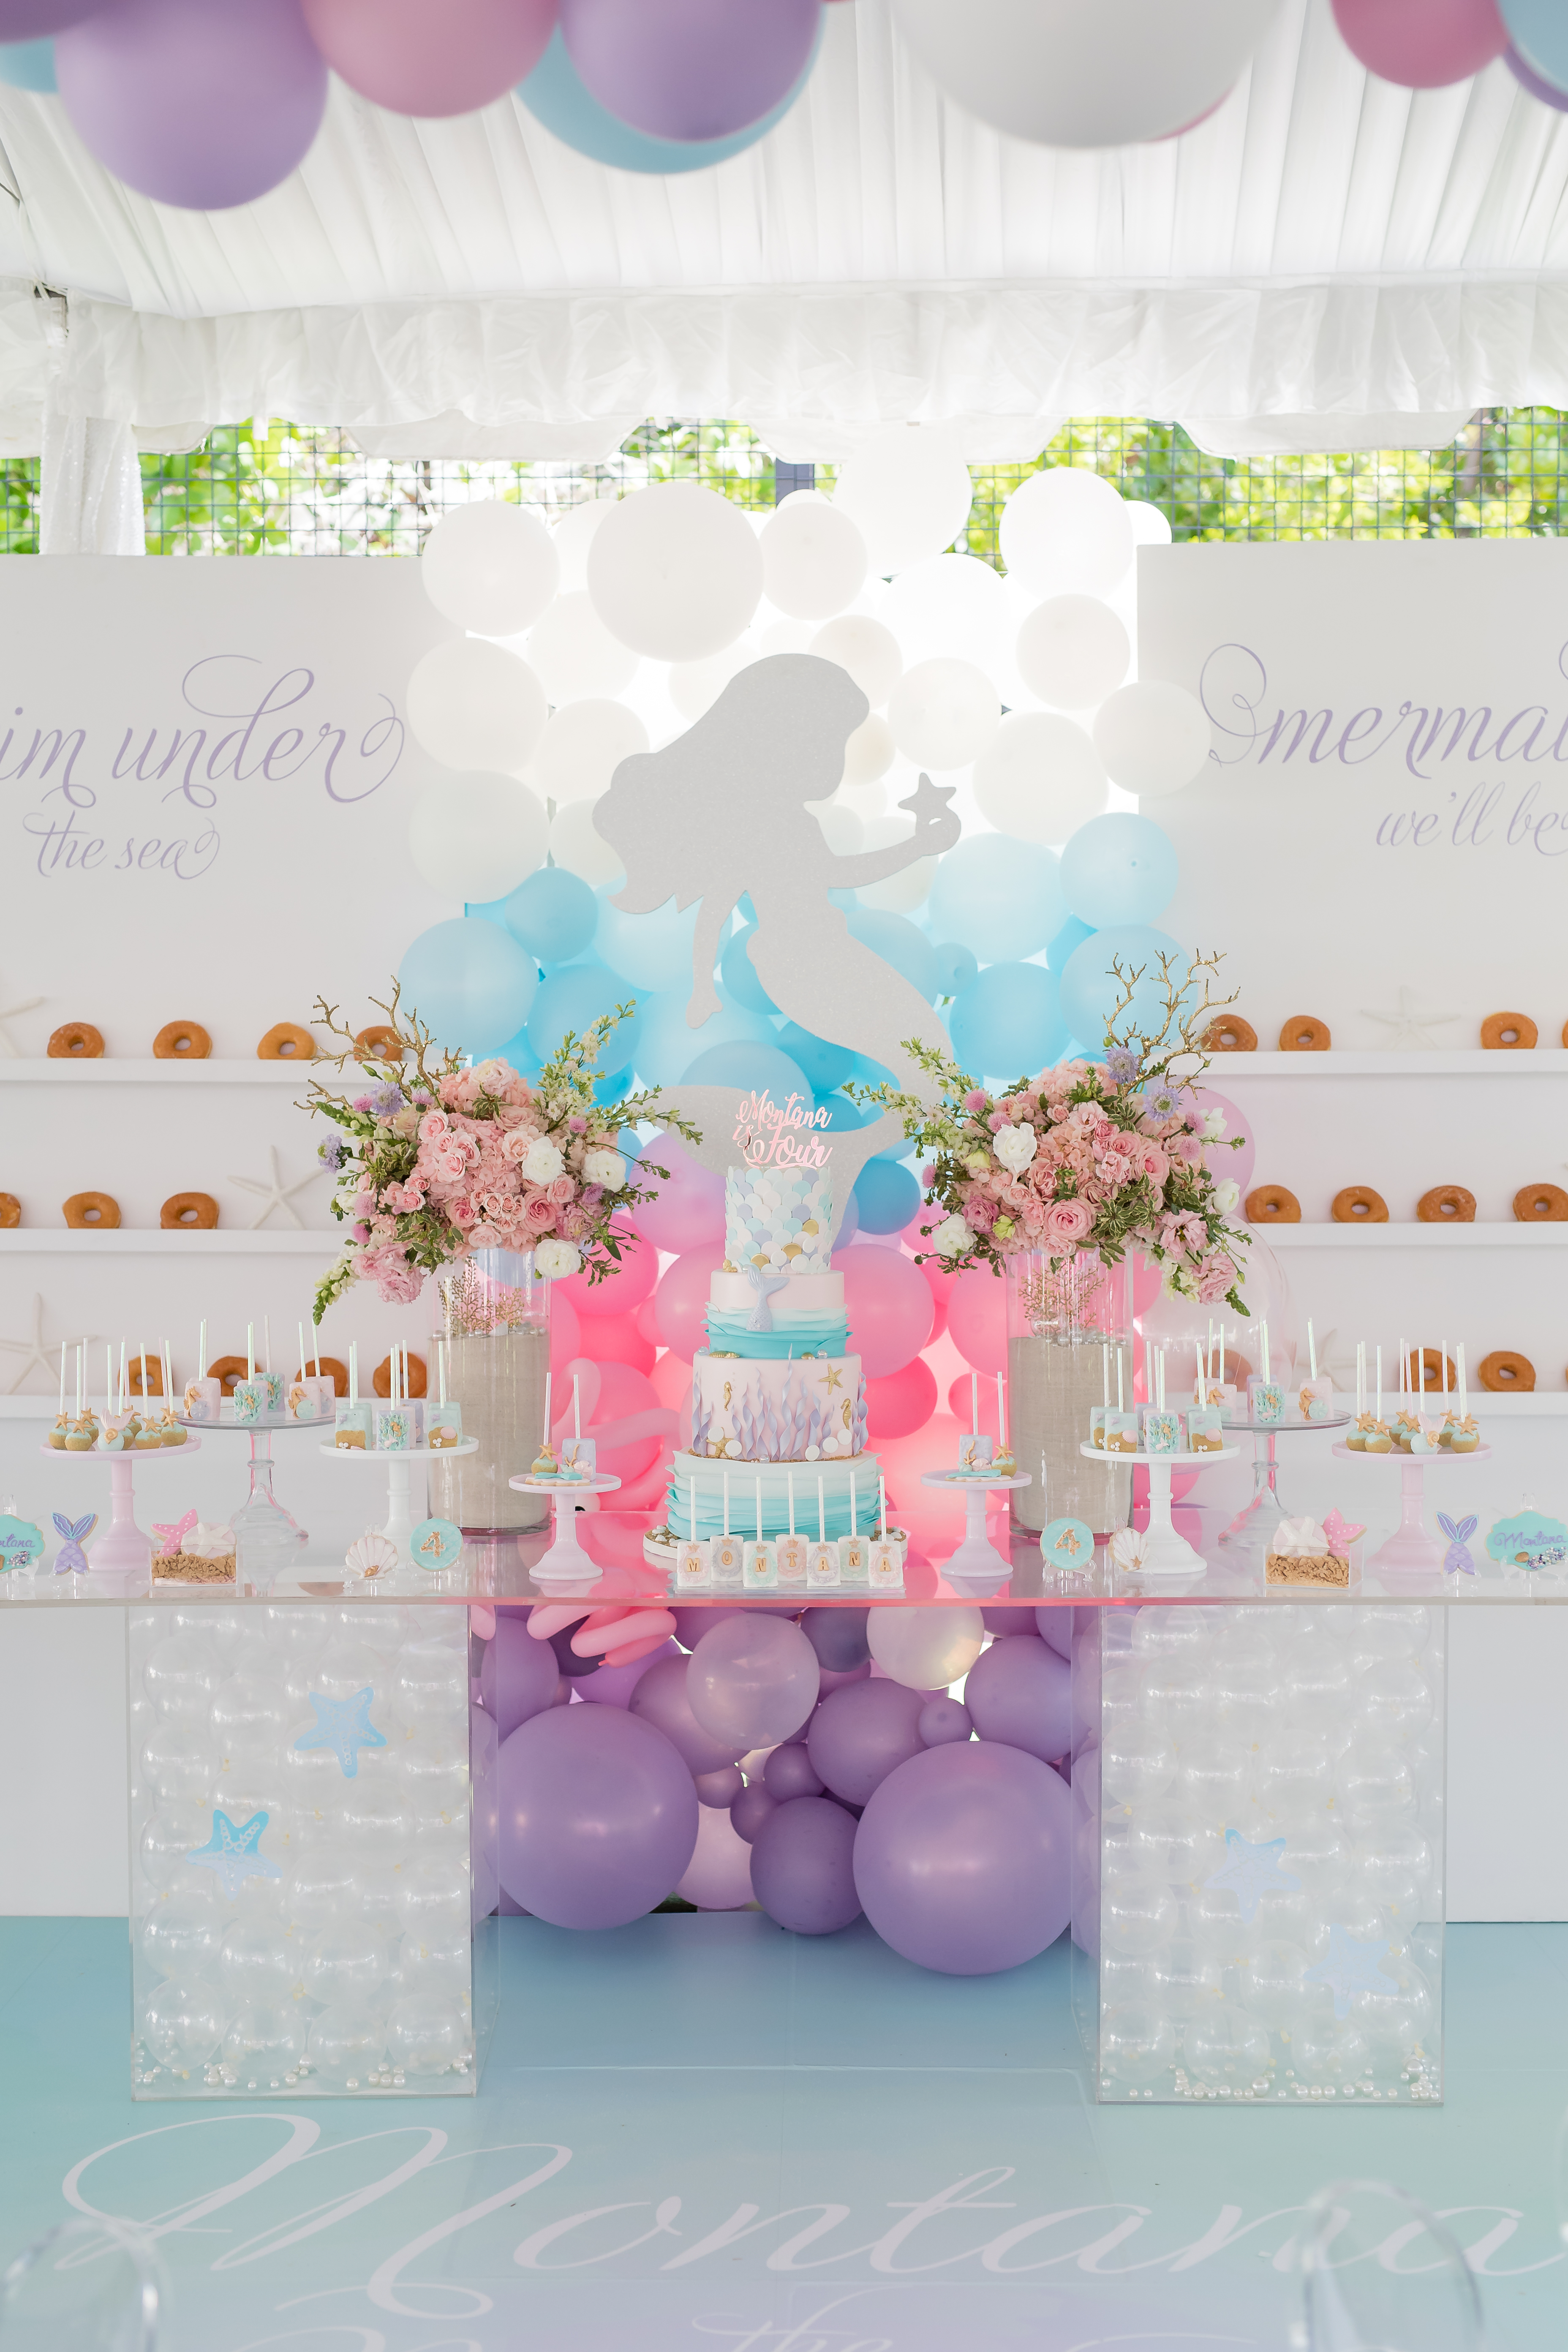 Montana's Mermaid Party - One Inspired Party